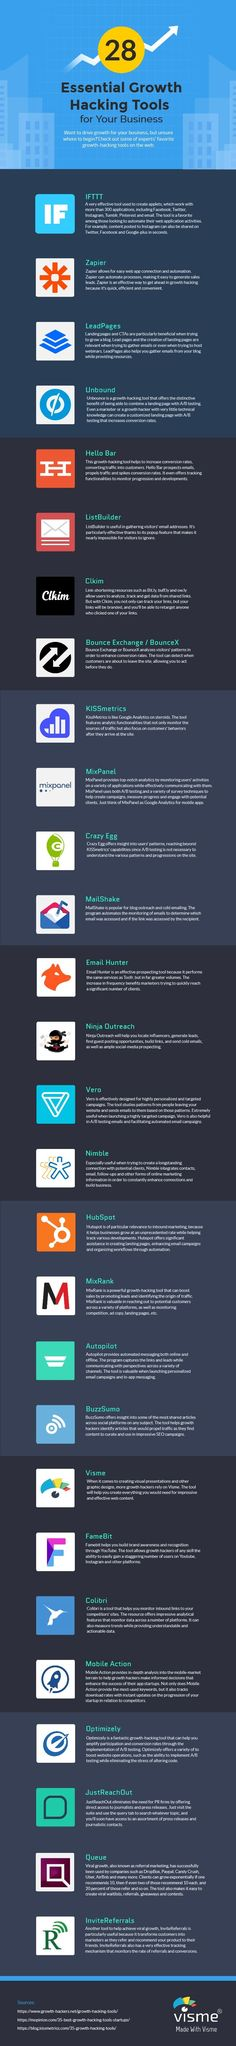 28 Essential Growth Hacking Tools to Rapidly Build Your Business [Infographic] Internet Marketing Company, Sales And Marketing, Marketing Tools, Content Marketing, Online Marketing, Digital Marketing, Affiliate Marketing, Mail Marketing, Marketing Strategies